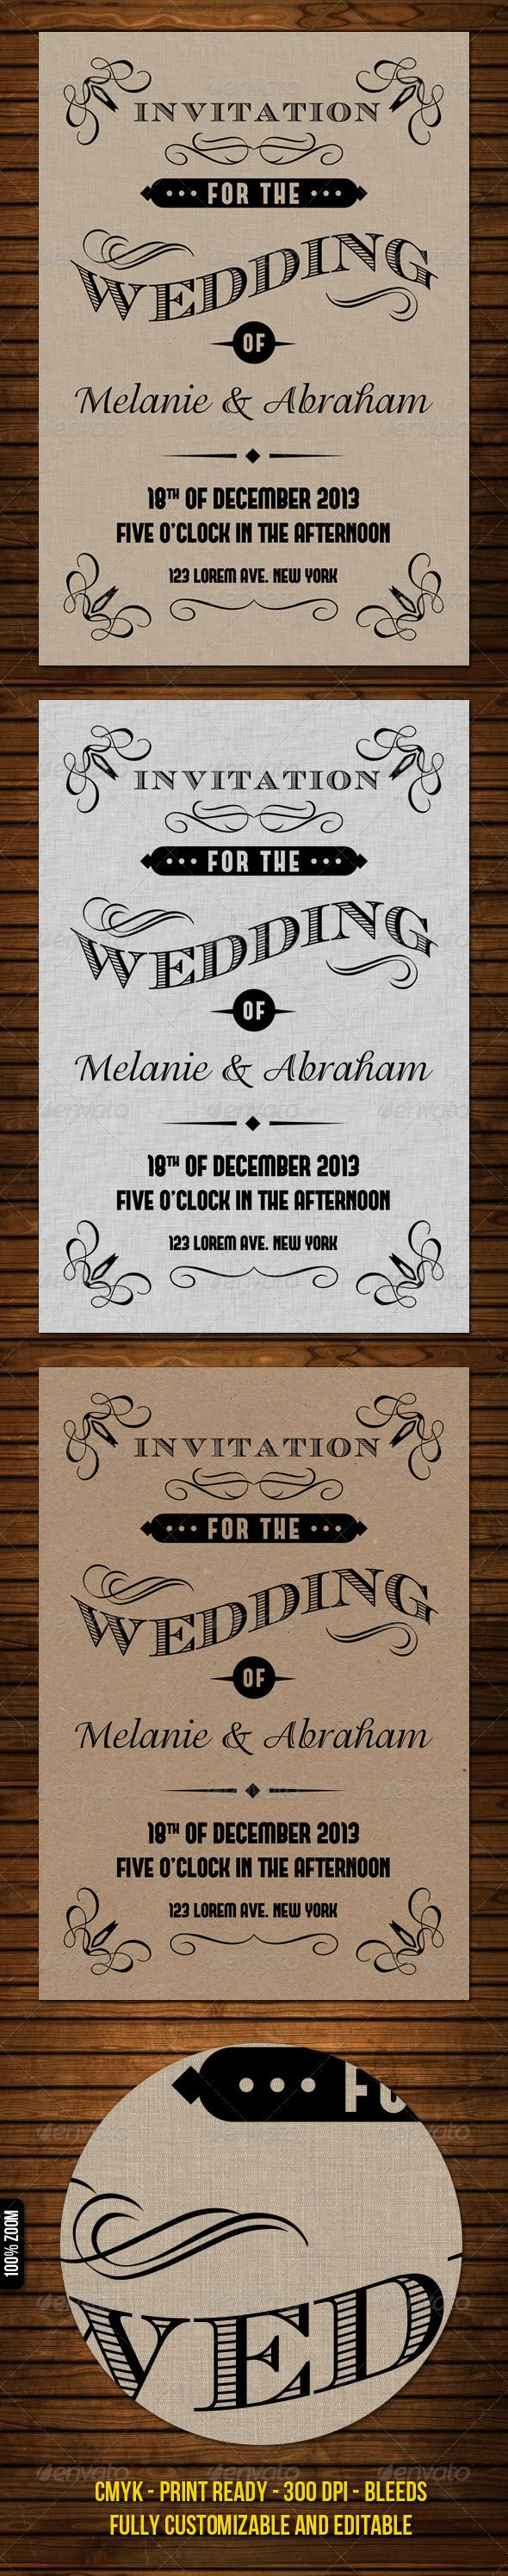 wedding invitations design template%0A Us Map States Download